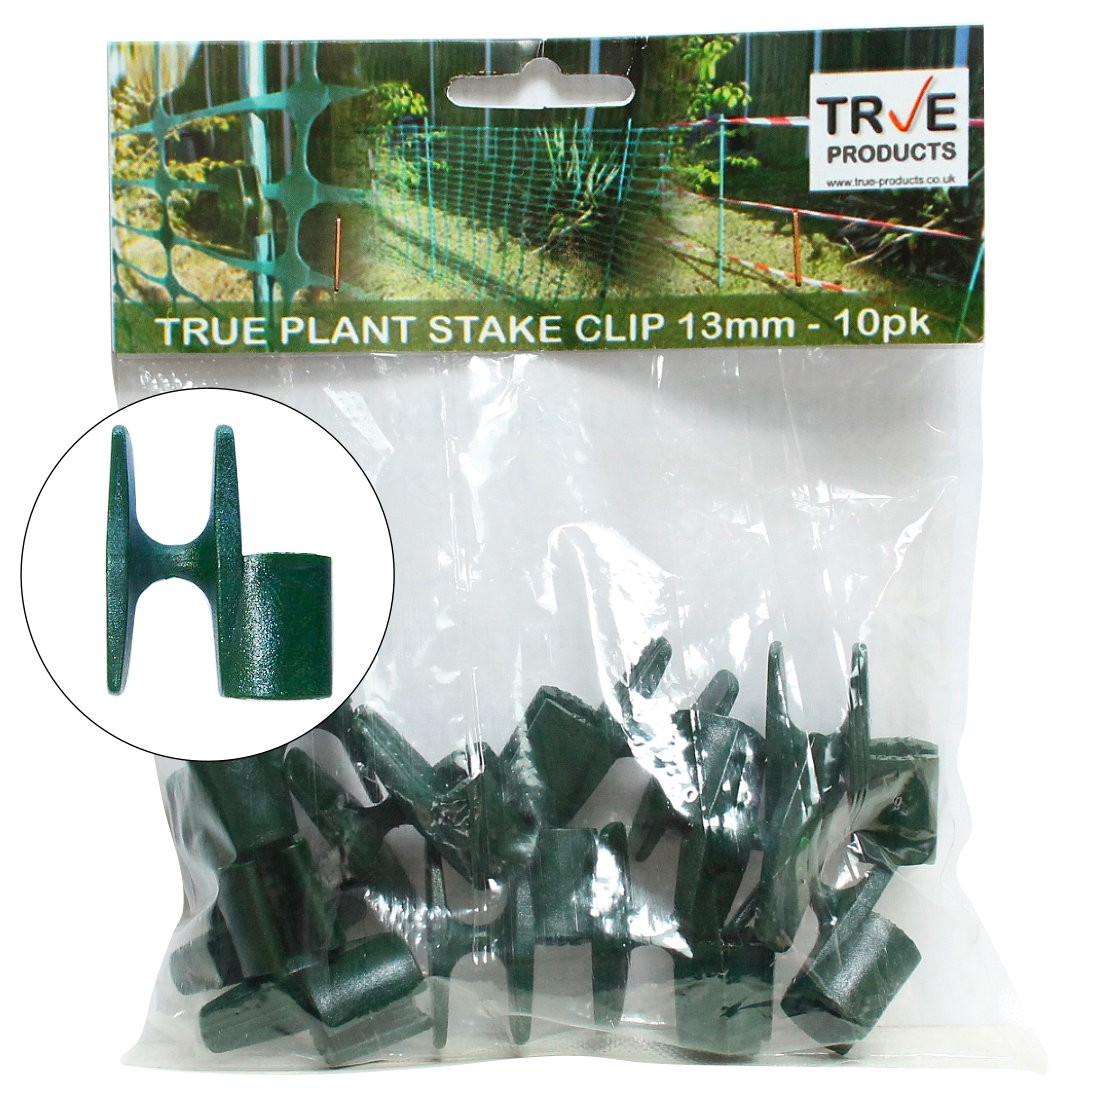 True Plant Stake Clips Green for True 13mm Plant Stakes